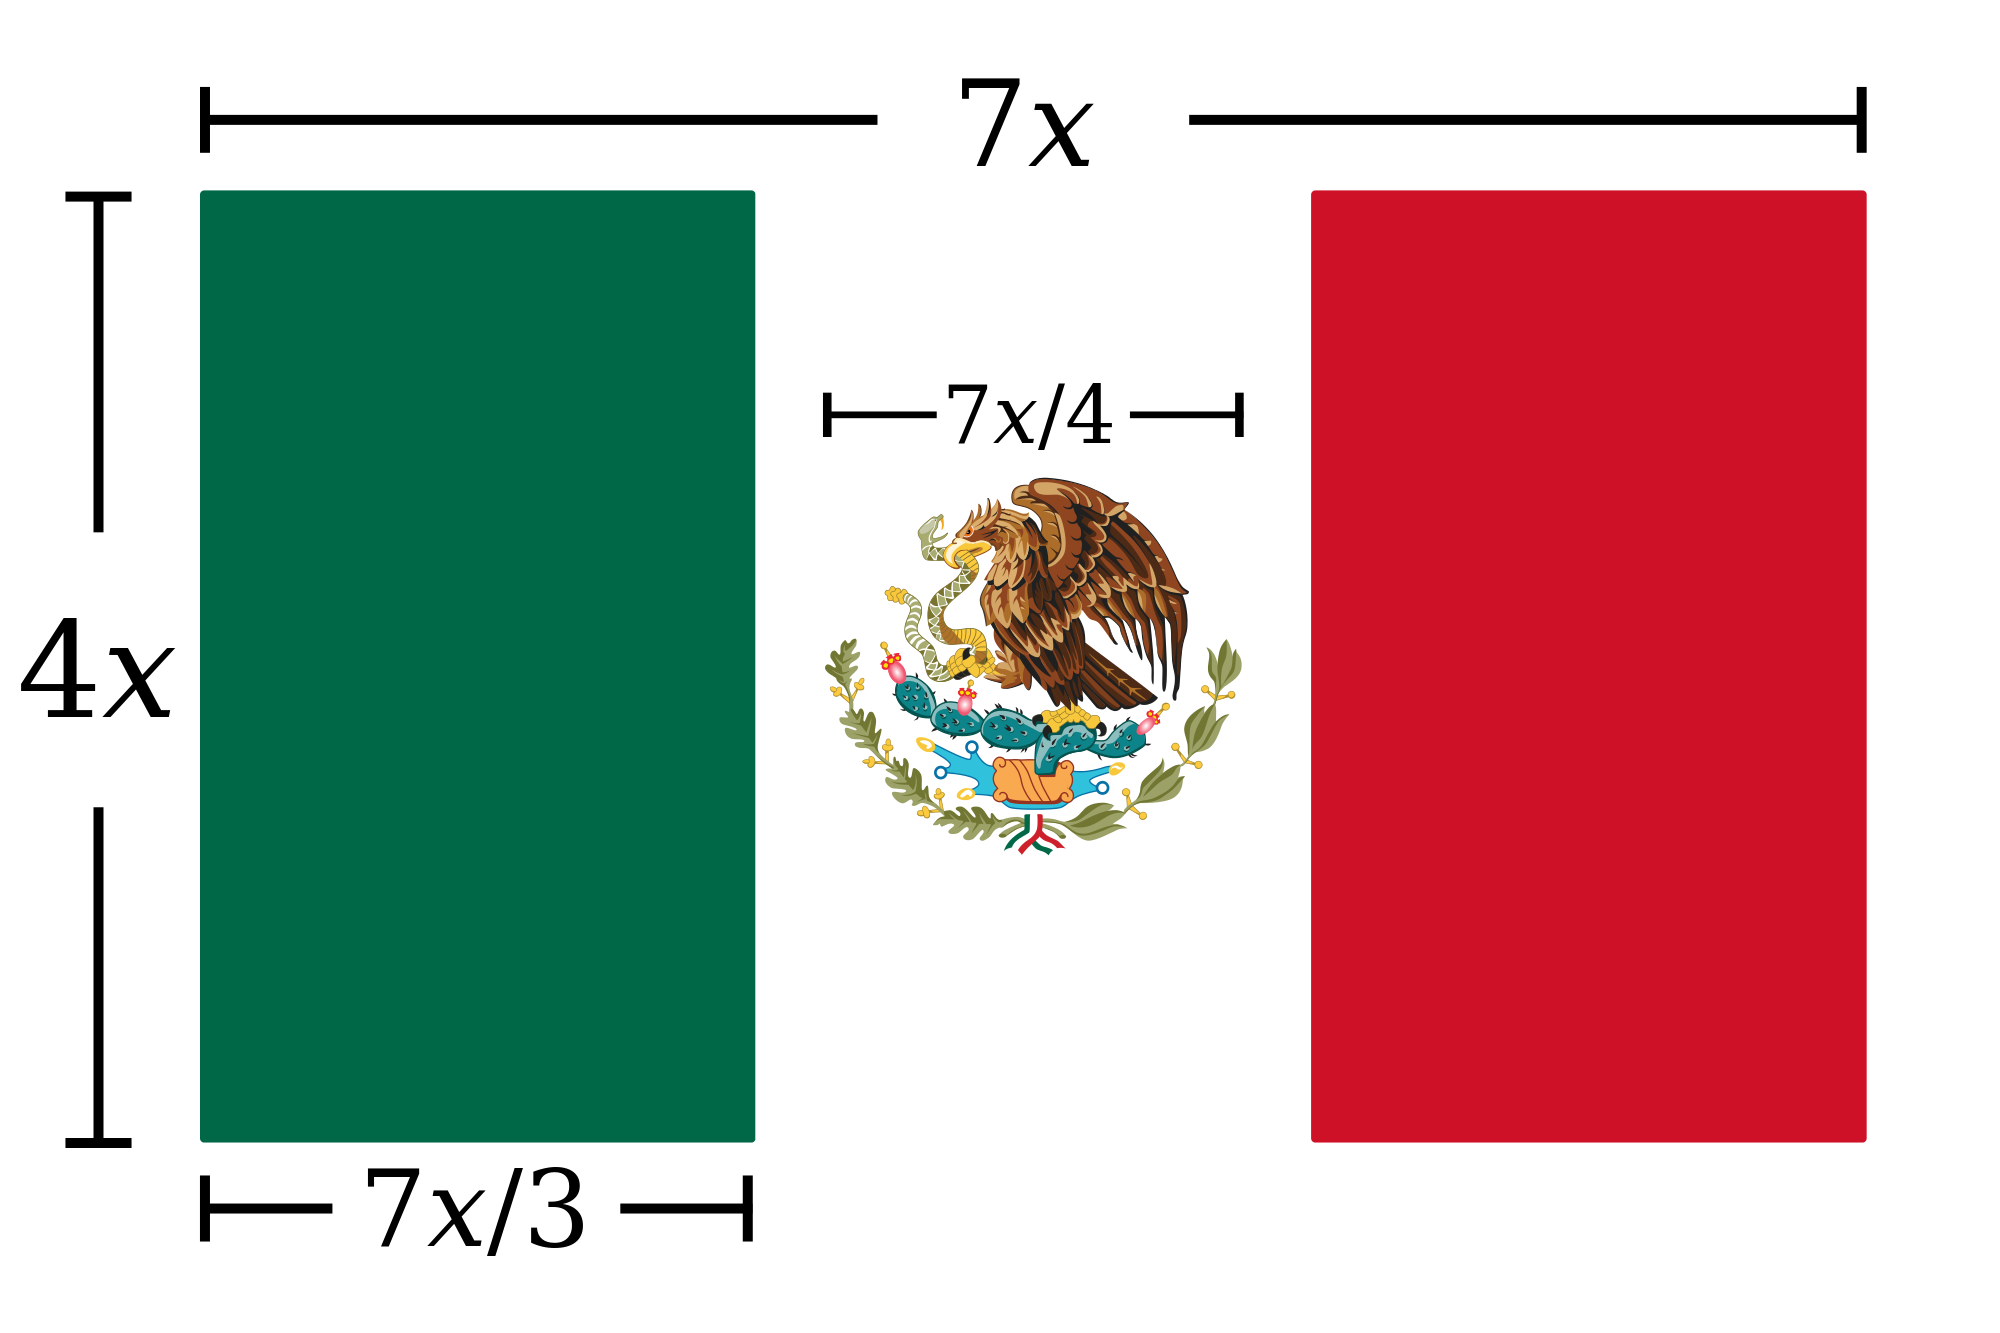 Bandeira mexico clipart picture royalty free Bandeira mexico png clipart images gallery for free download ... picture royalty free